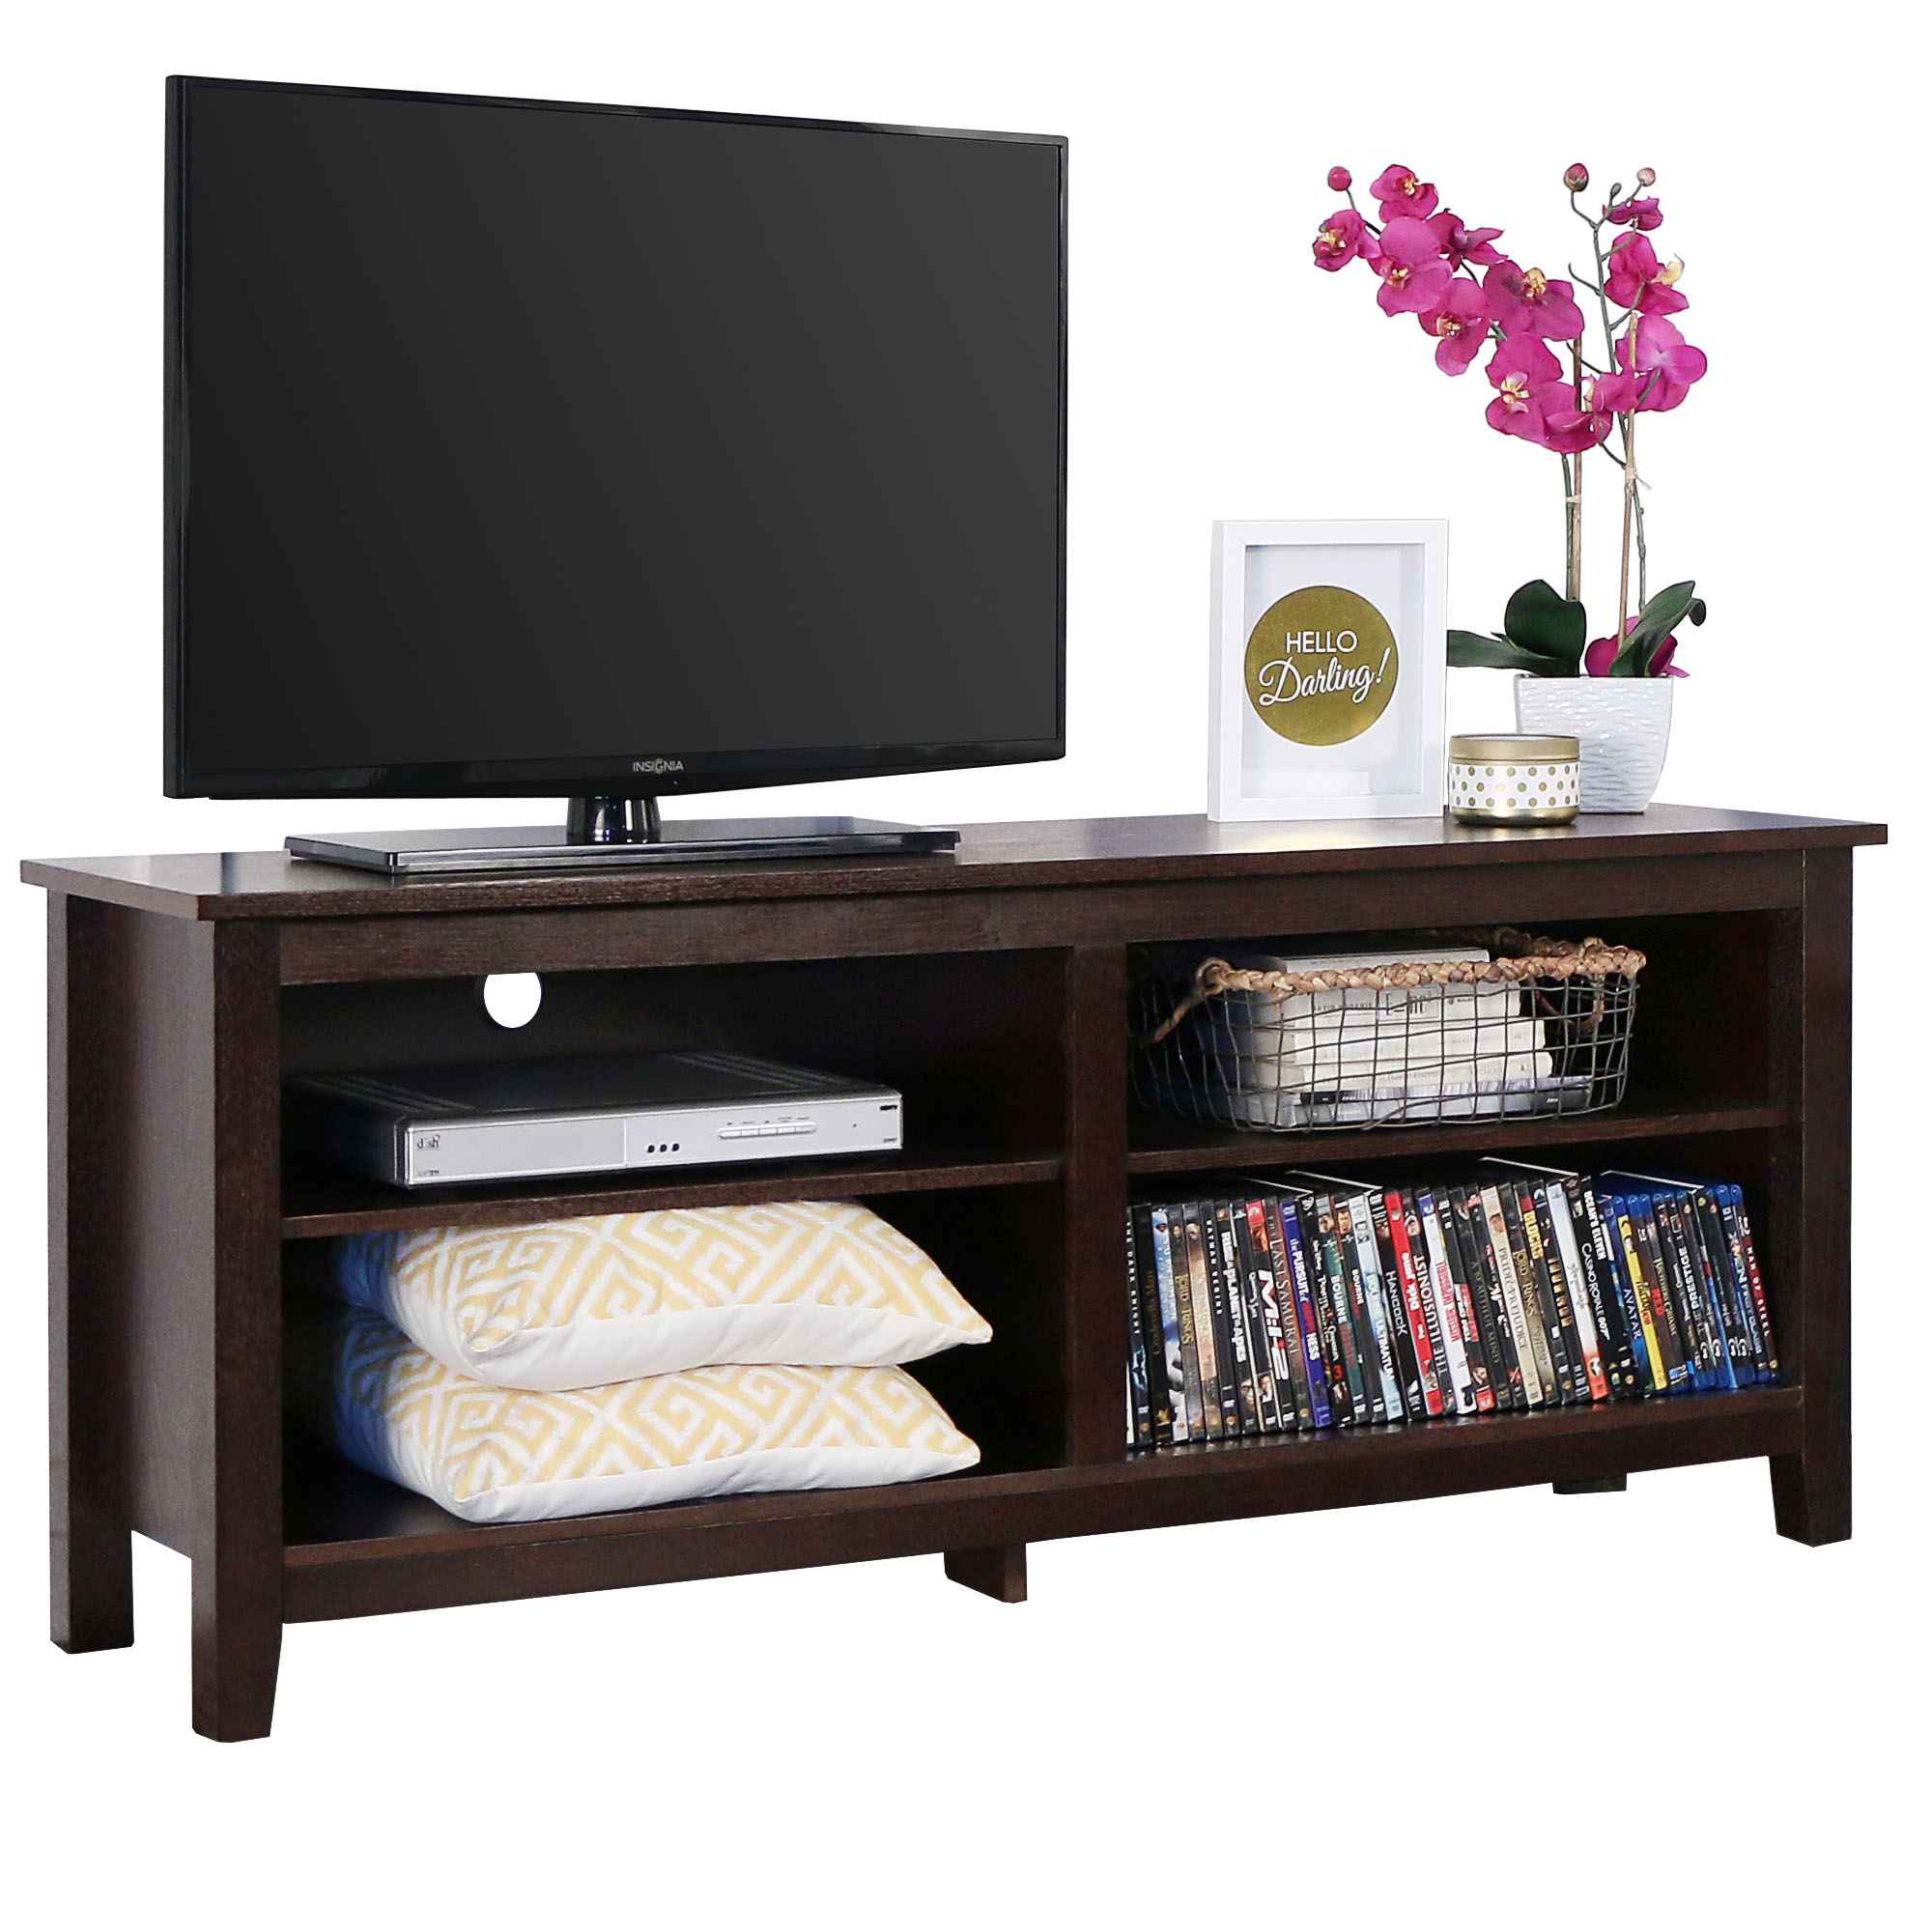 "Manor Park 58"" Wood TV Media Stand Storage Console - Espresso"